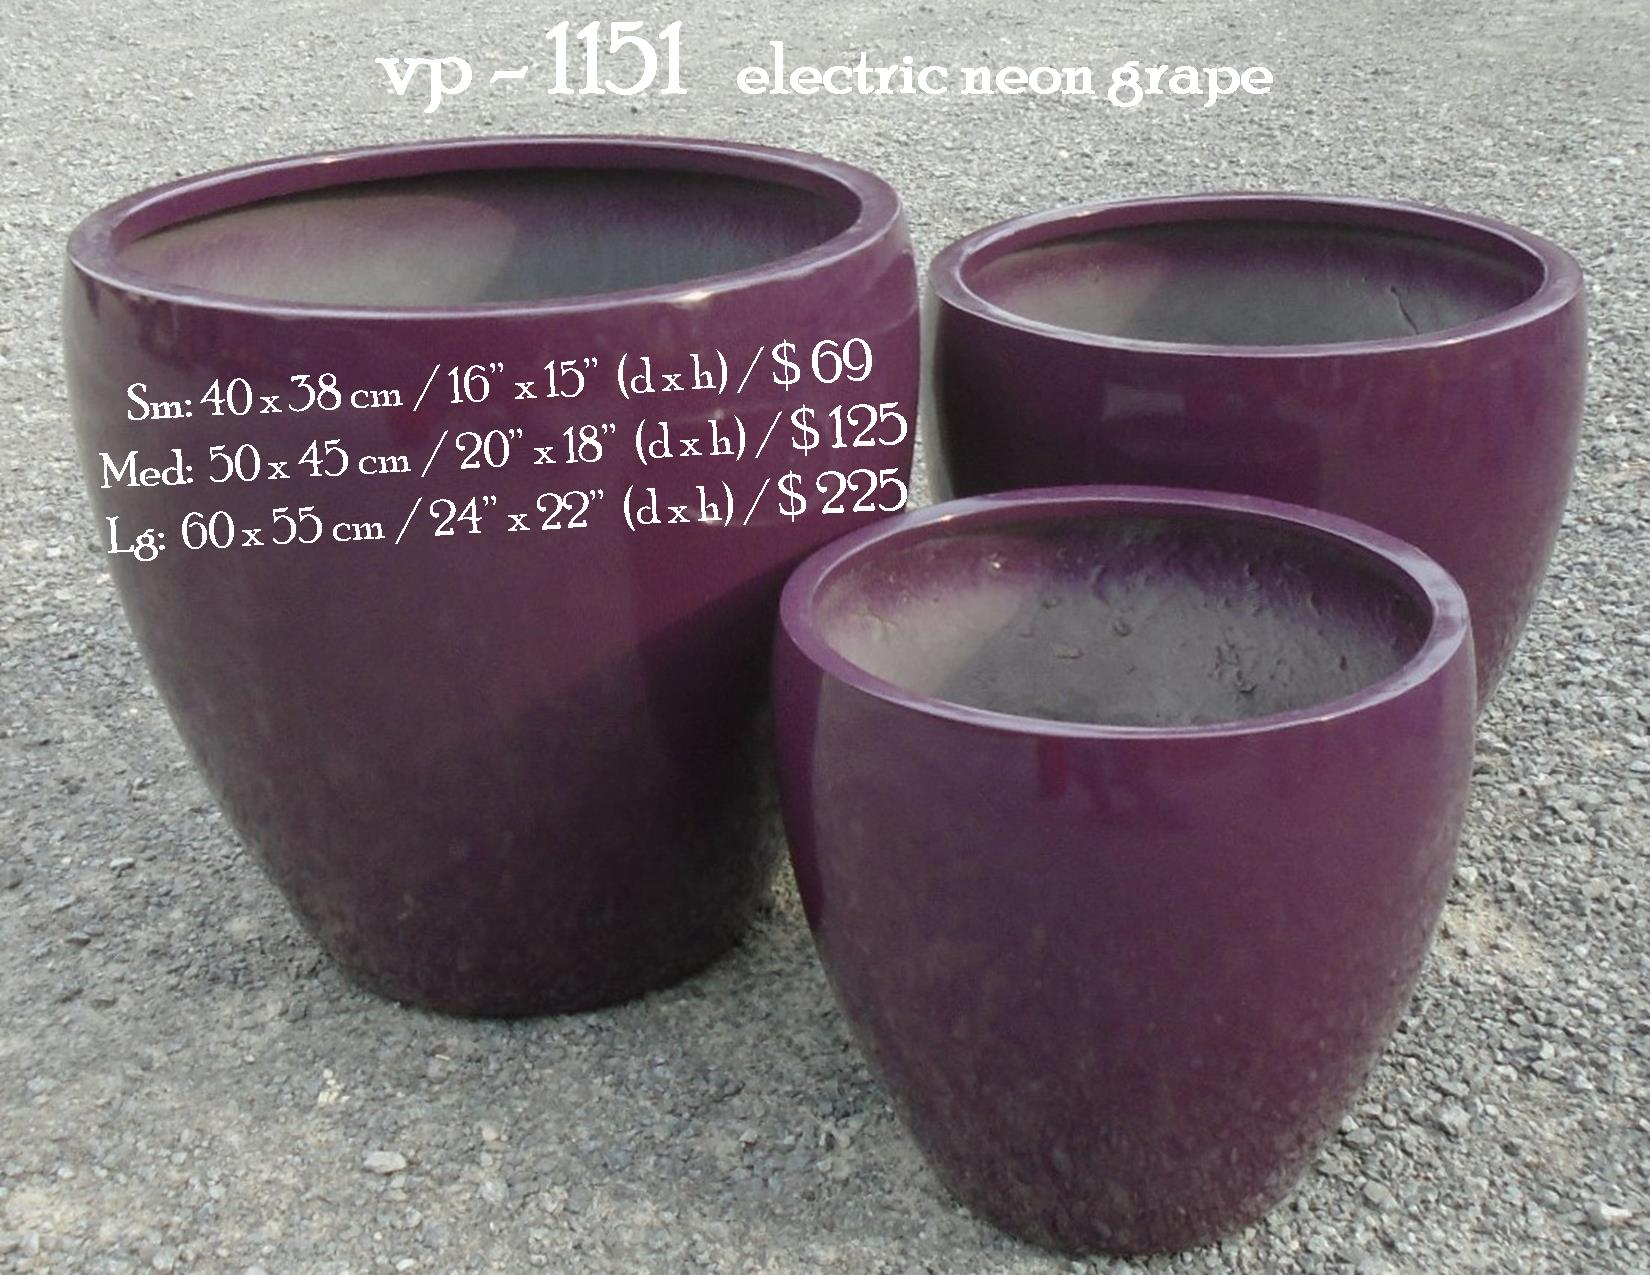 vp - 1151   electric neon grape